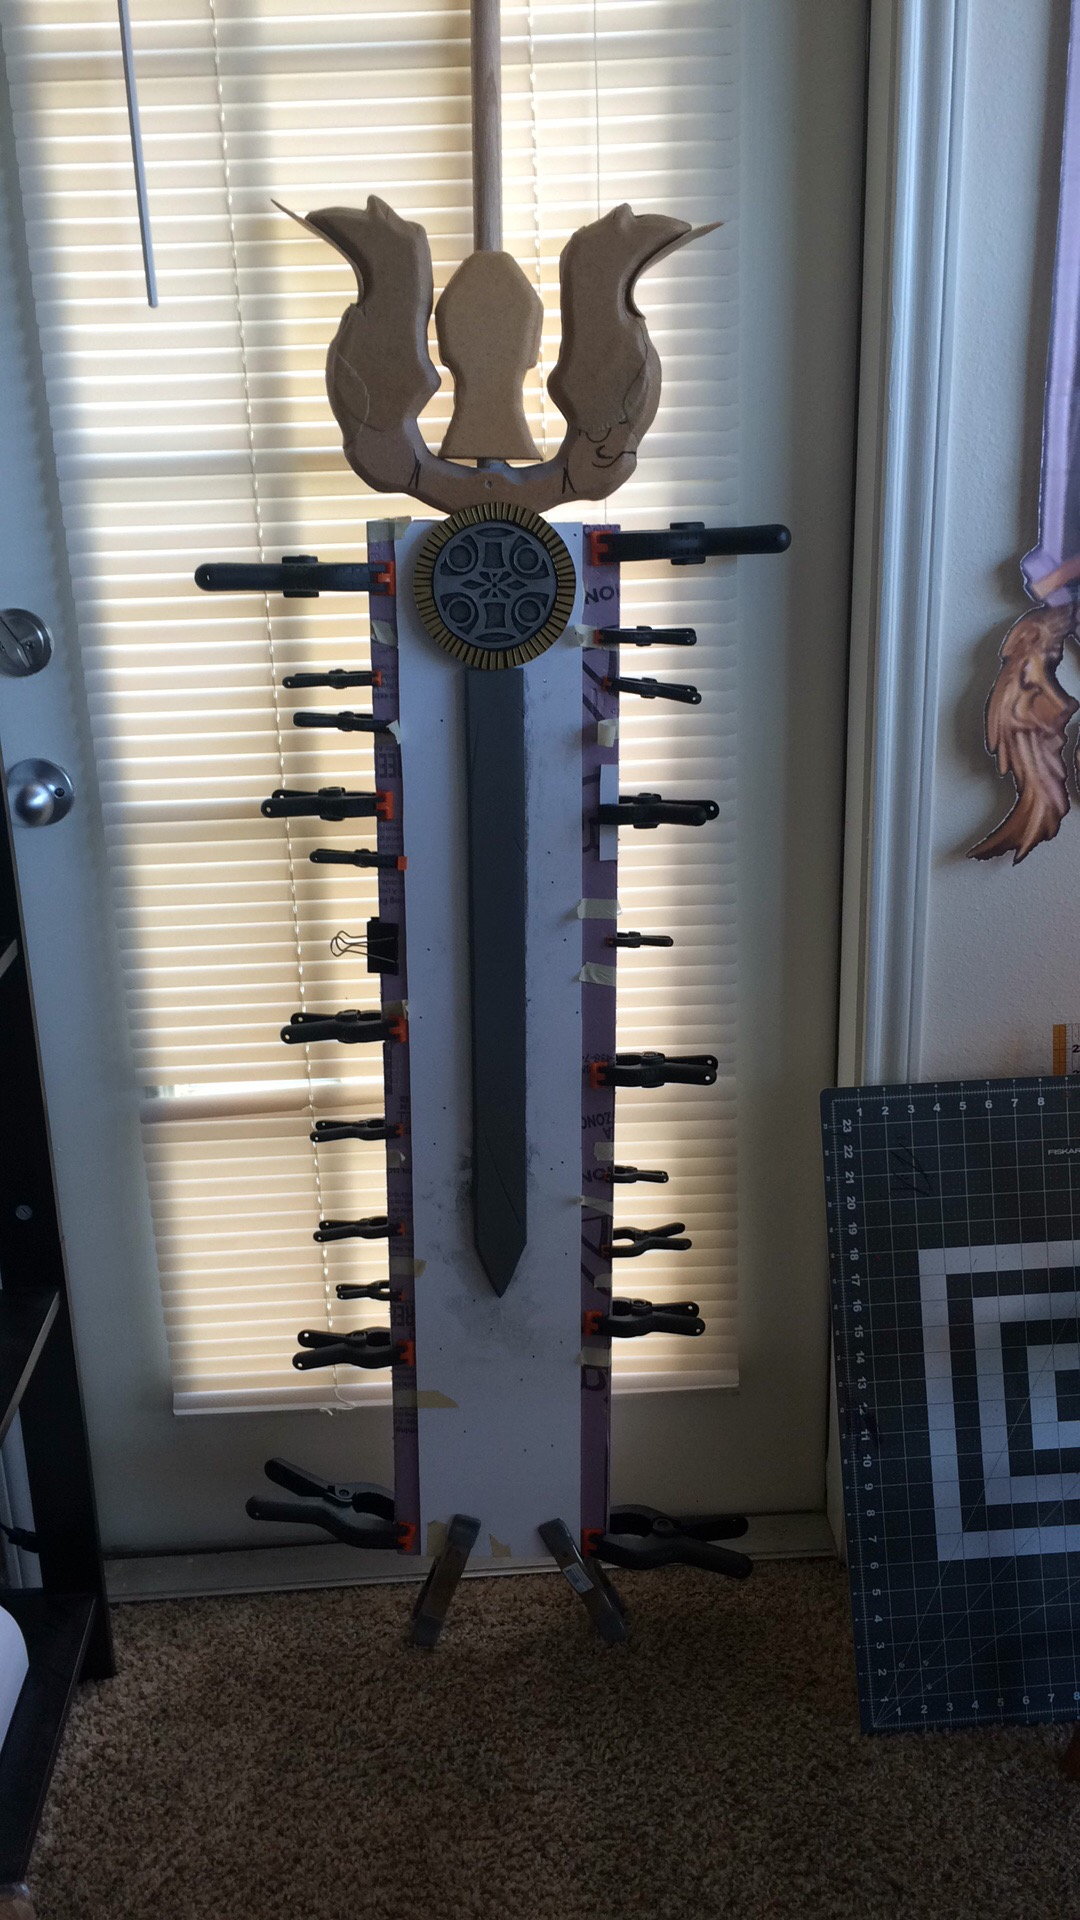 Gladiolus Sword Cosplay Glue